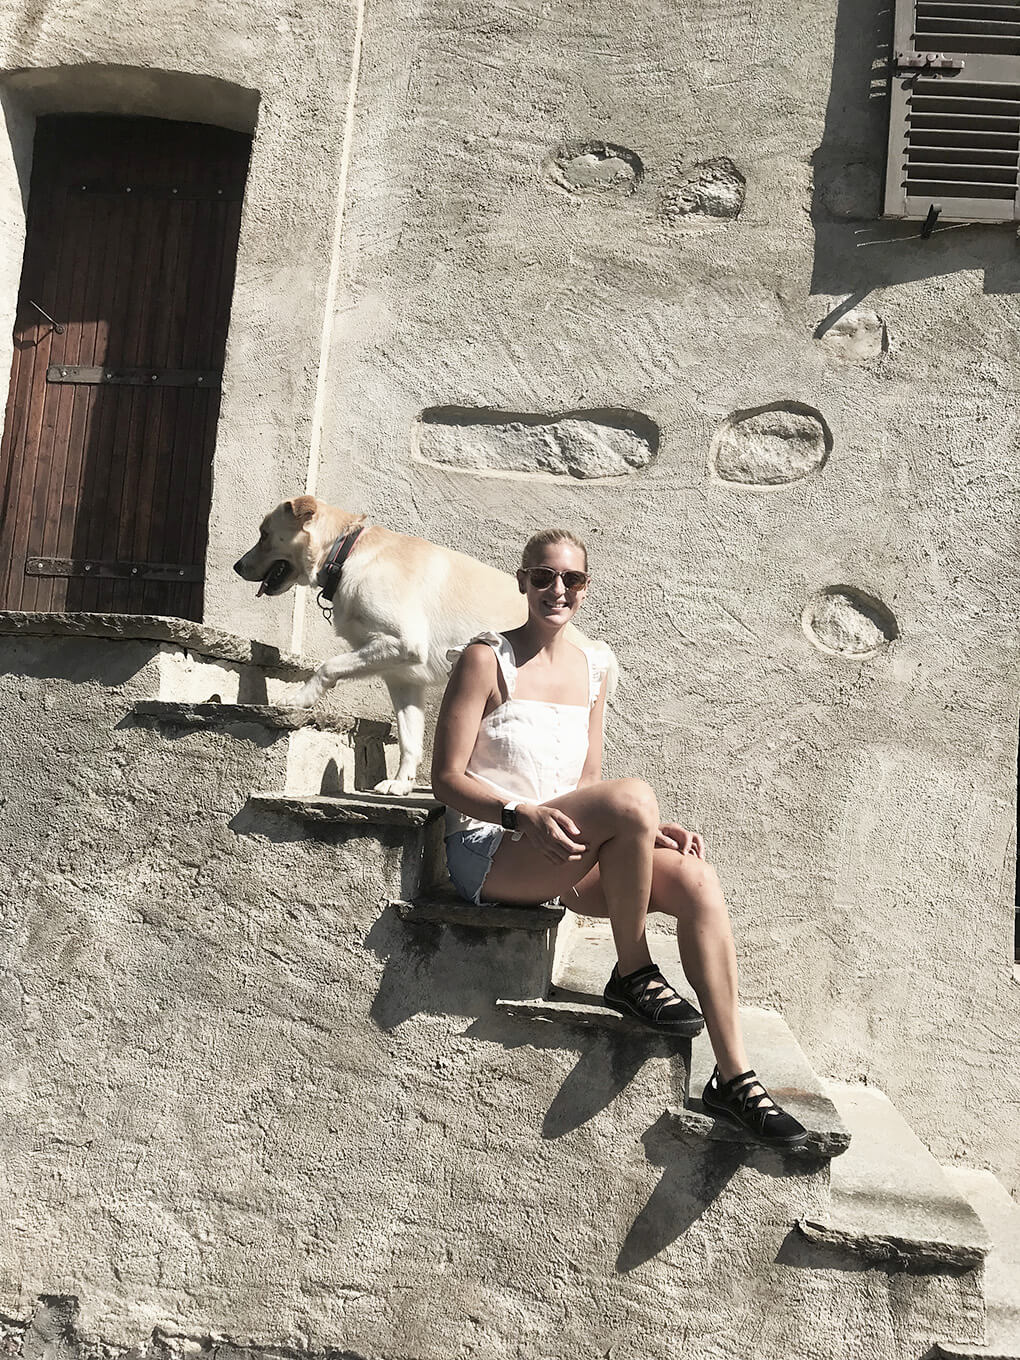 Top 17 Things from Italy www.sarahkayhoffman.com SKH dog Luserna San Giovanni #italy #travel